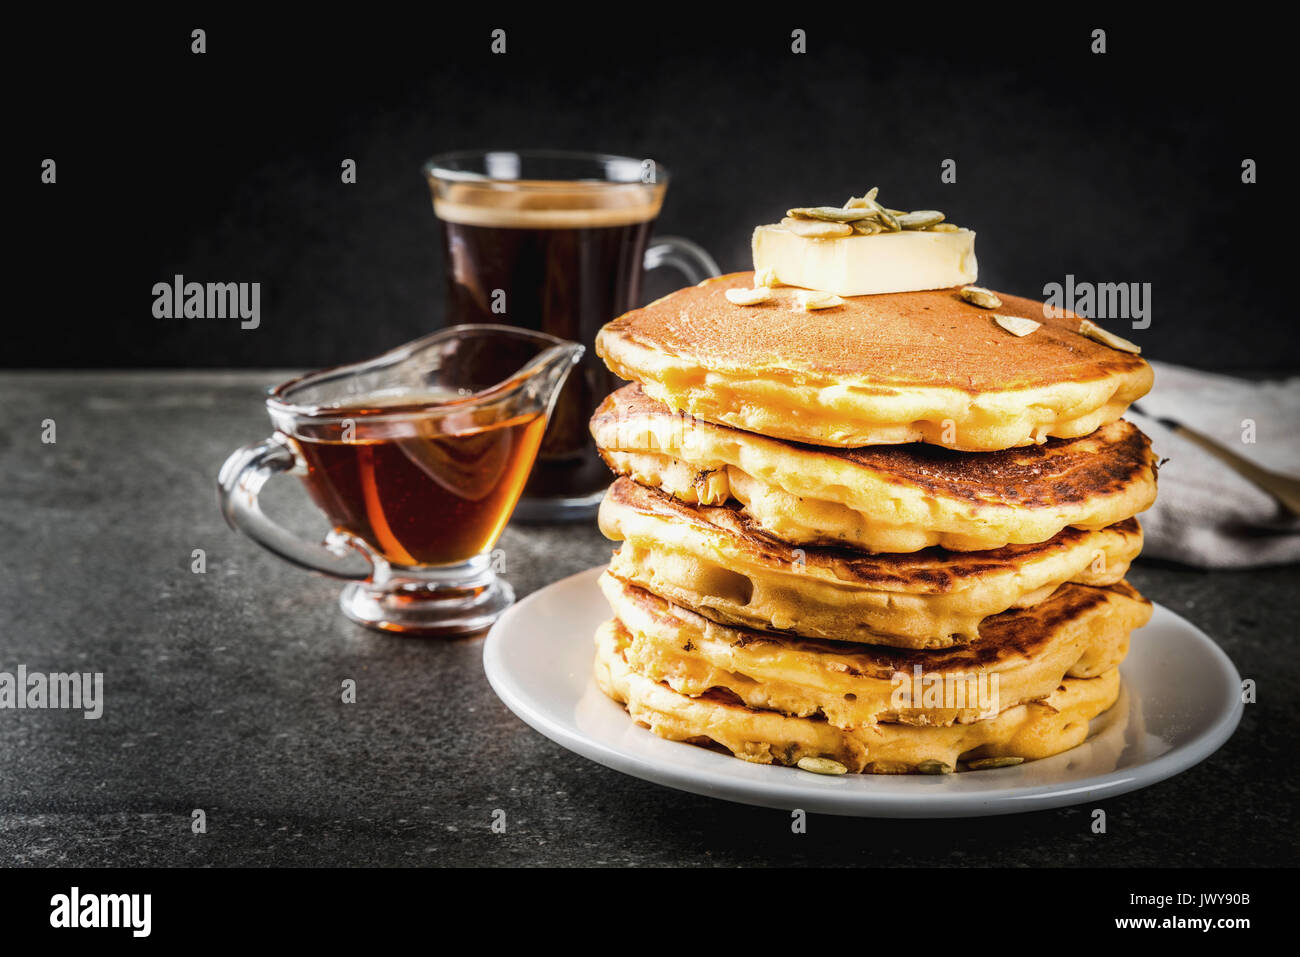 Autumnal traditional food. Stack of pumpkin pancakes with butter, pumpkin seeds and maple syrup. With a cup of coffee. Stock Photo